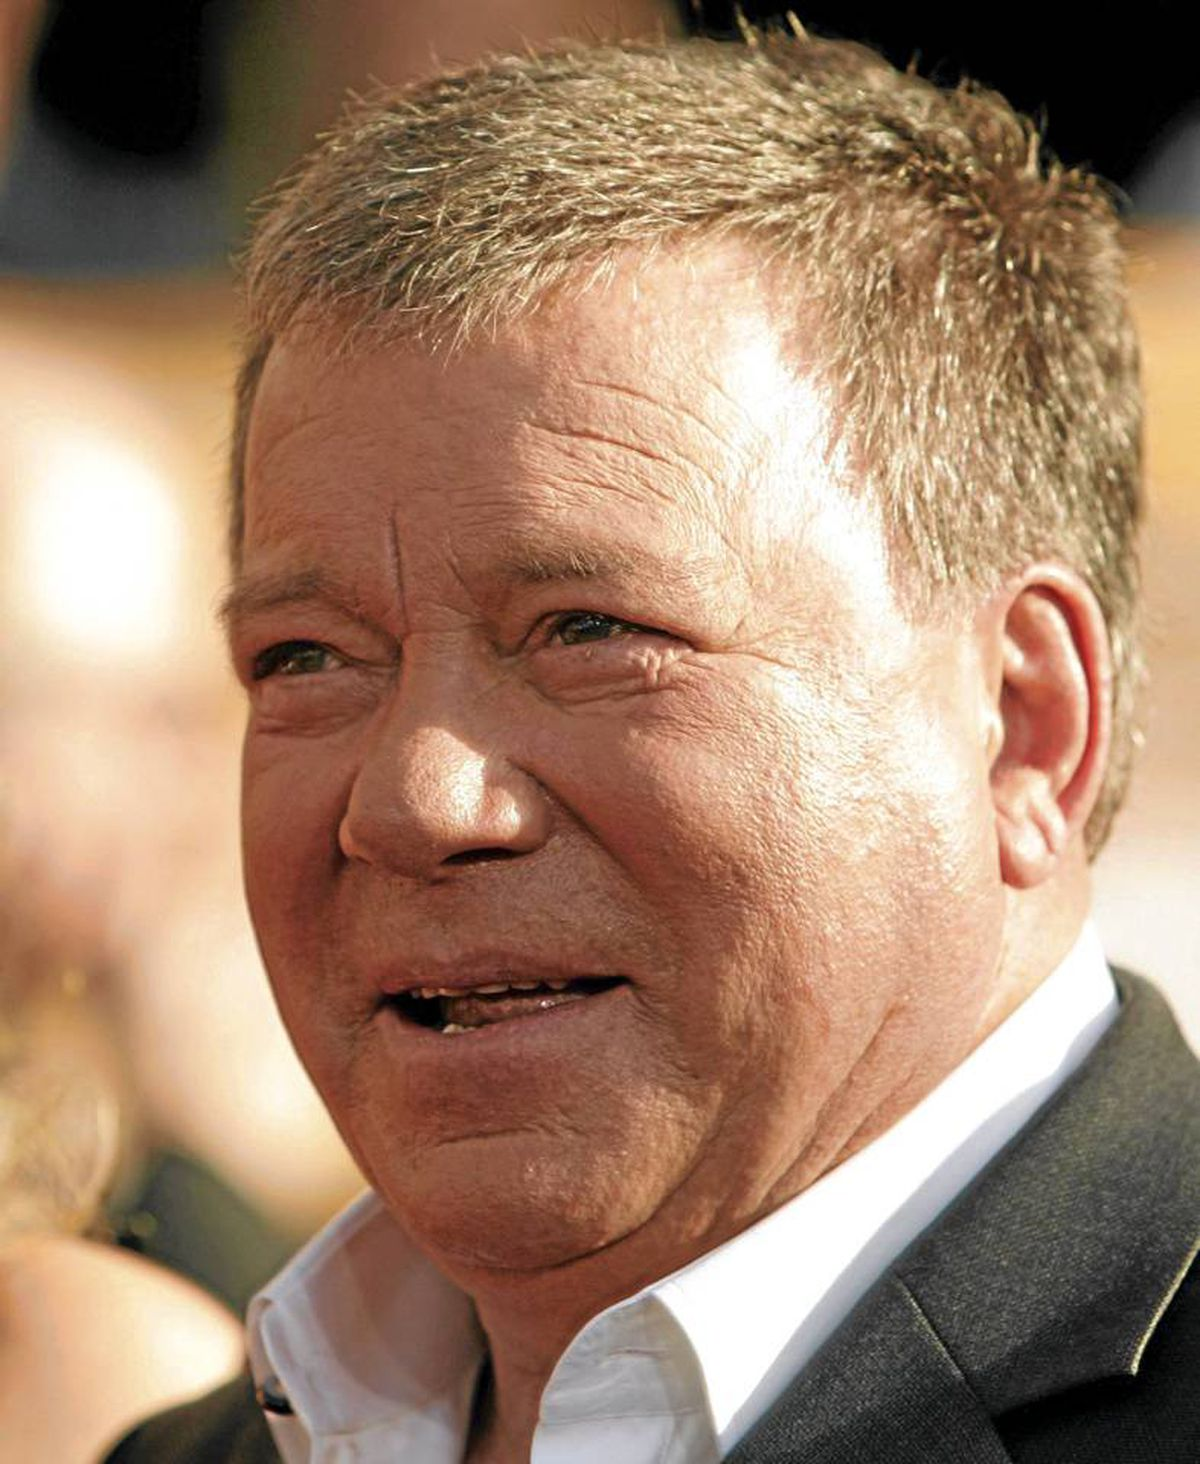 William Shatner, part owner of C.O.R.E. Digital, which was forced into bankruptcy last month, tried to save the company after the Province of Ontario pulled out of negotiations with C.O.R.E. and the Royal Bank of Canada.